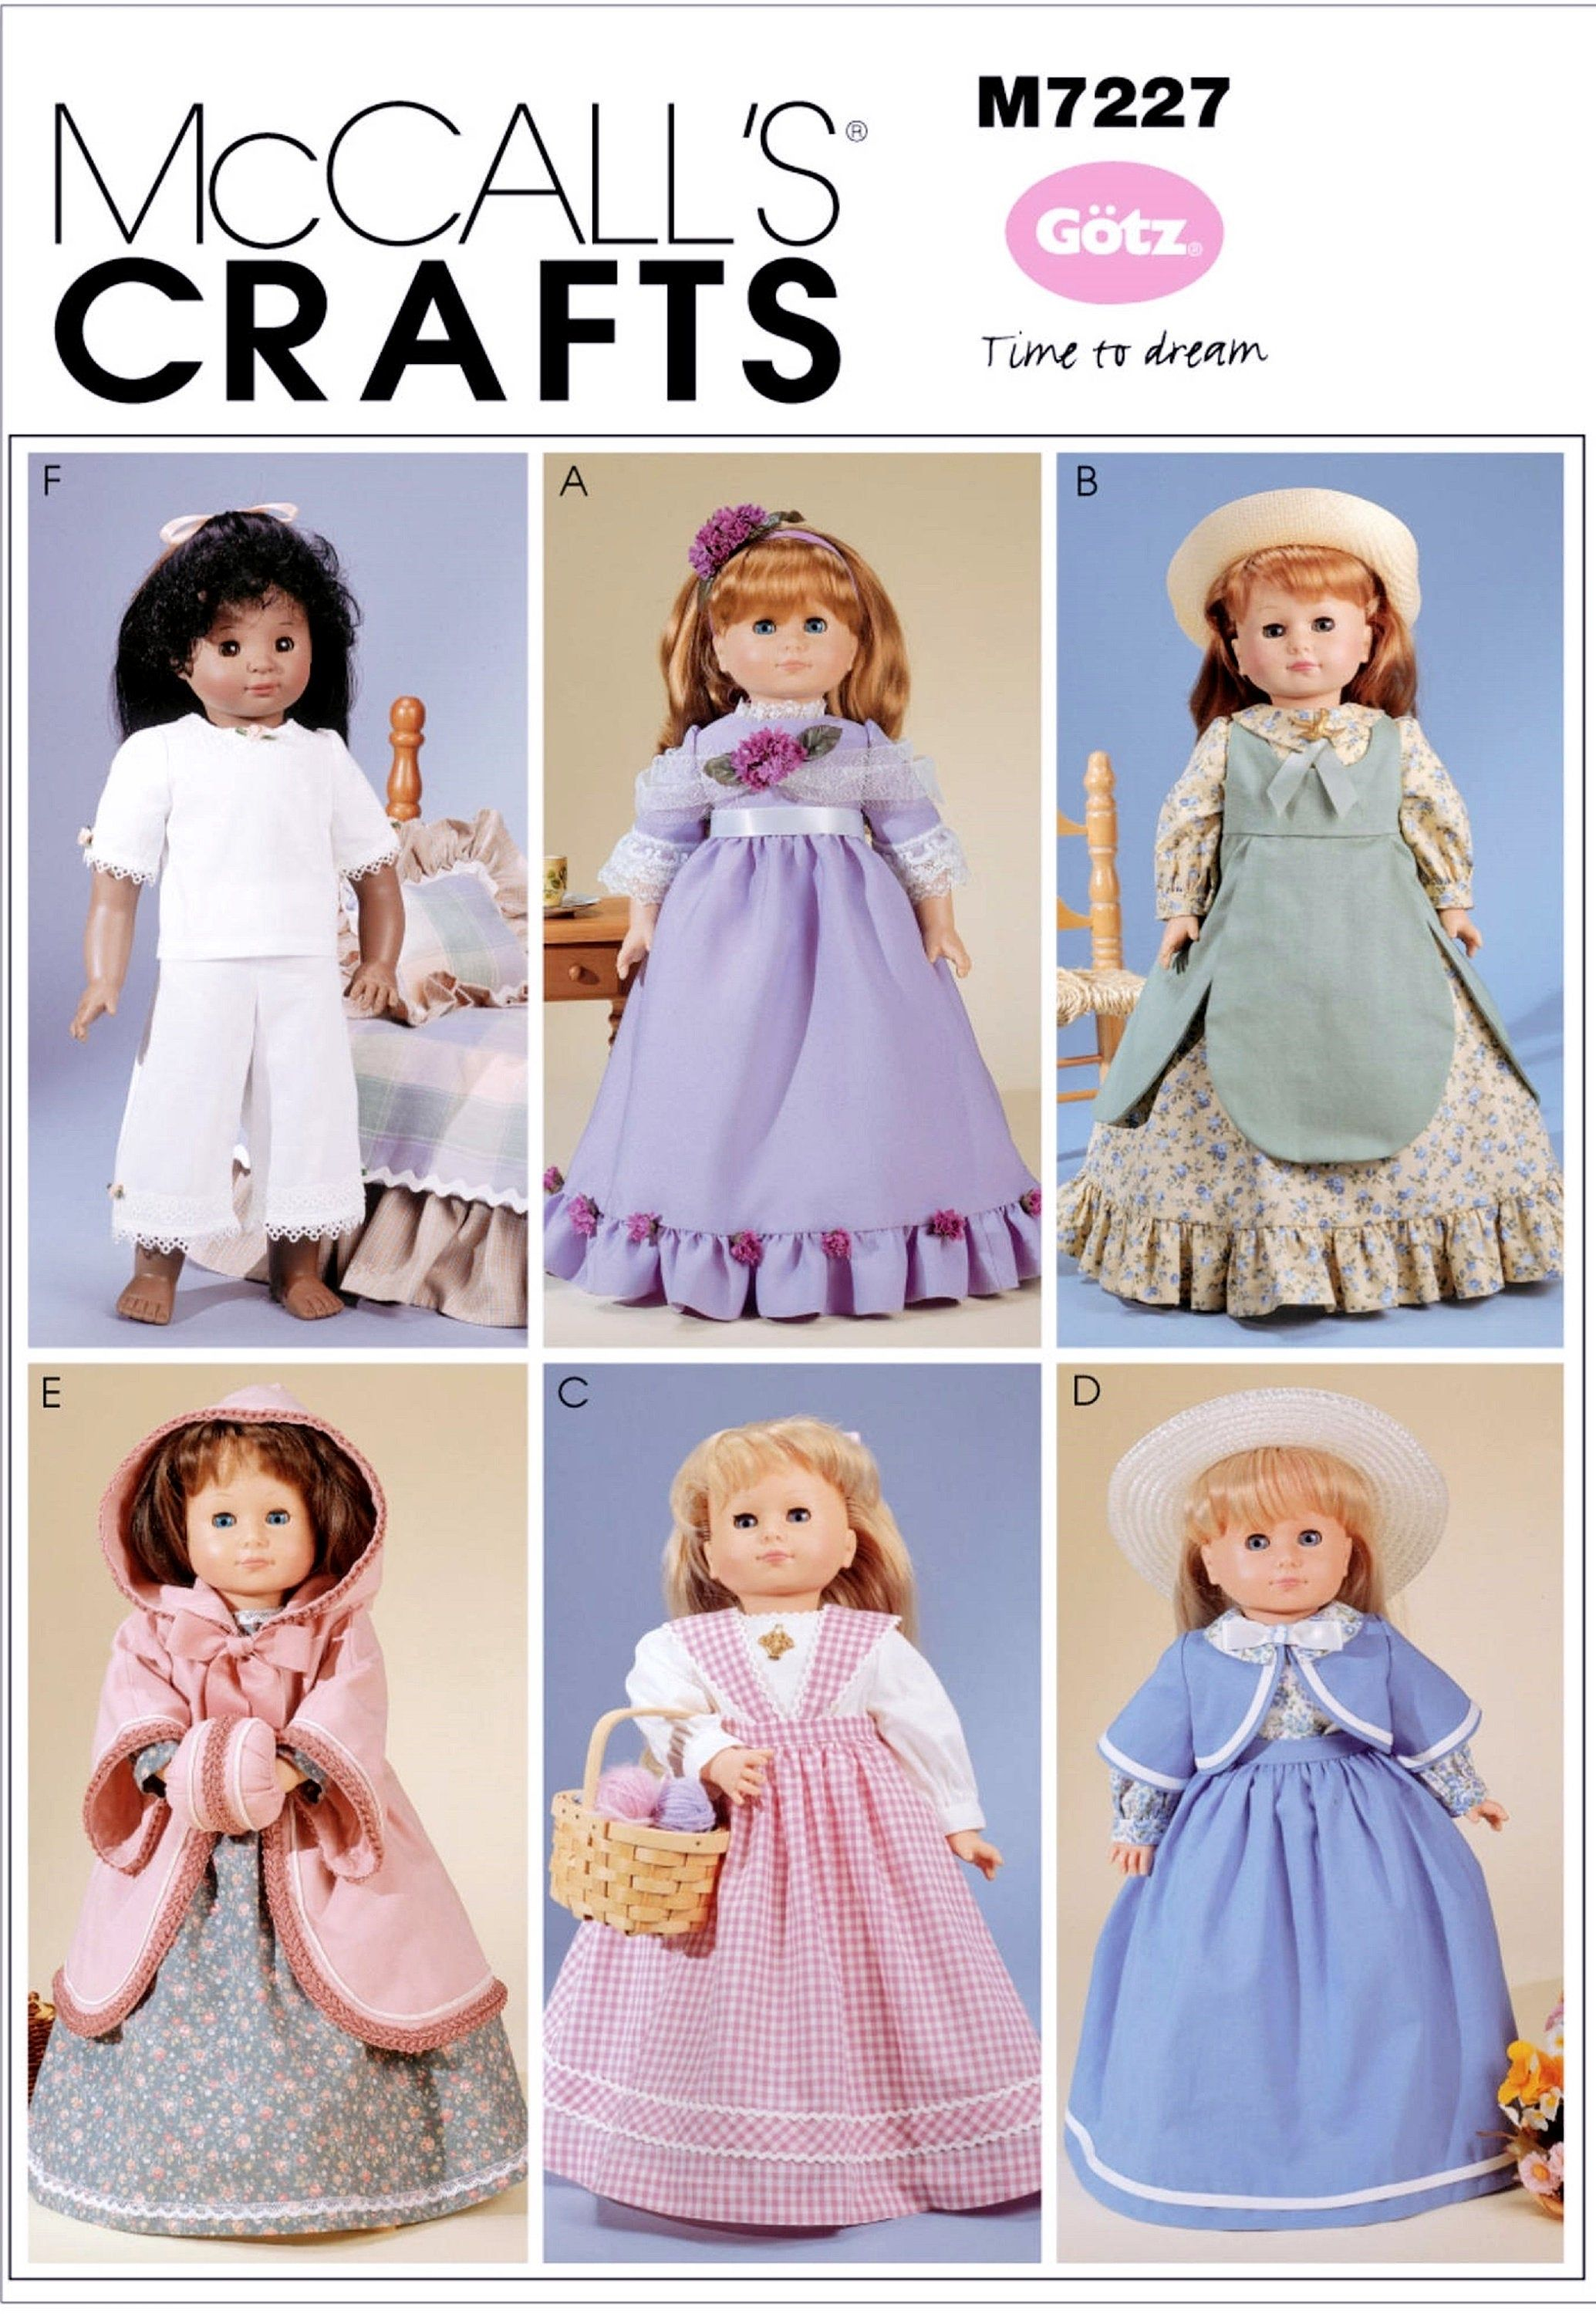 Sewing Pattern 18 inch Historical Doll Clothes Pattern, Doll Pantaloons Pattern, Prairie Dress Pattern, McCall's Sewing Pattern 7227 #instructionstodollpatterns